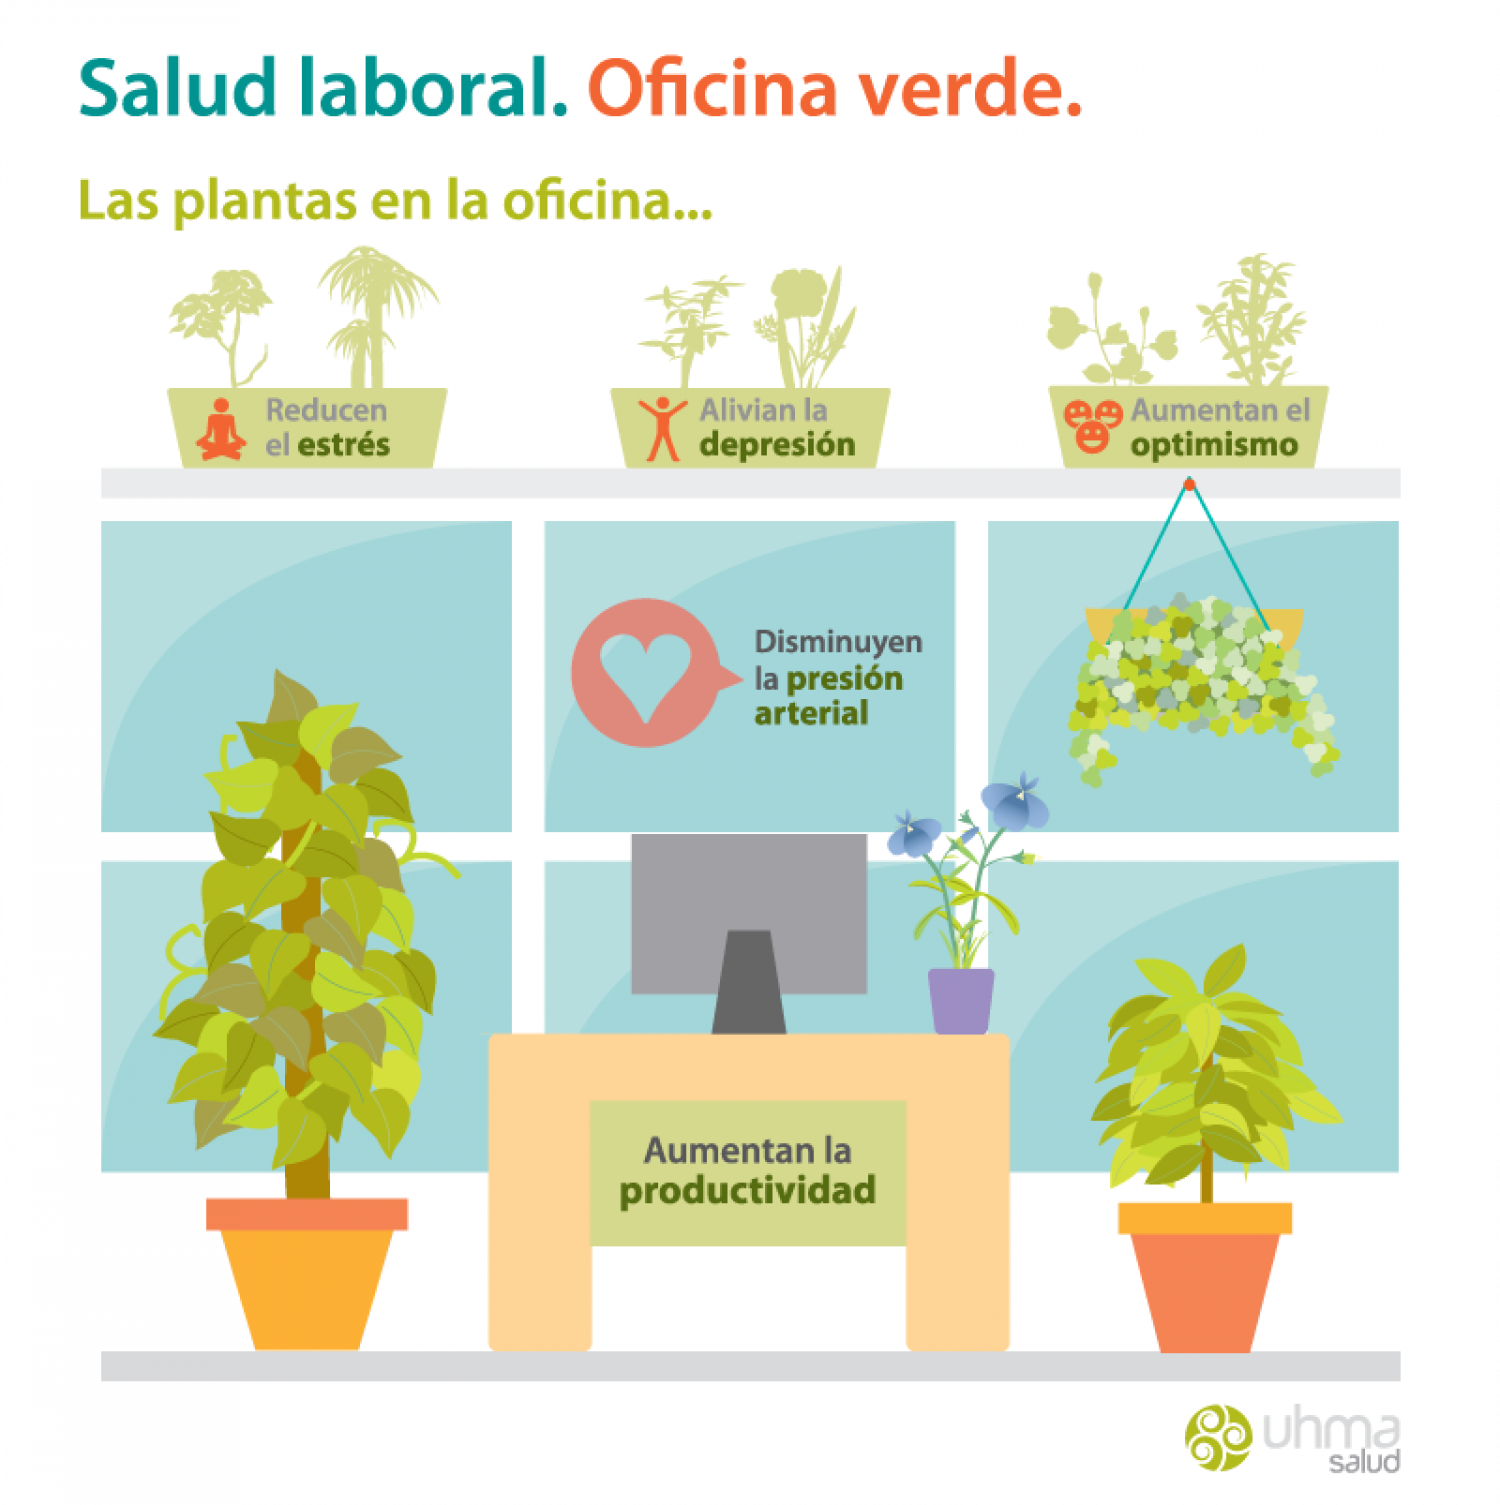 Salud laboral. Oficina verde. Infographic